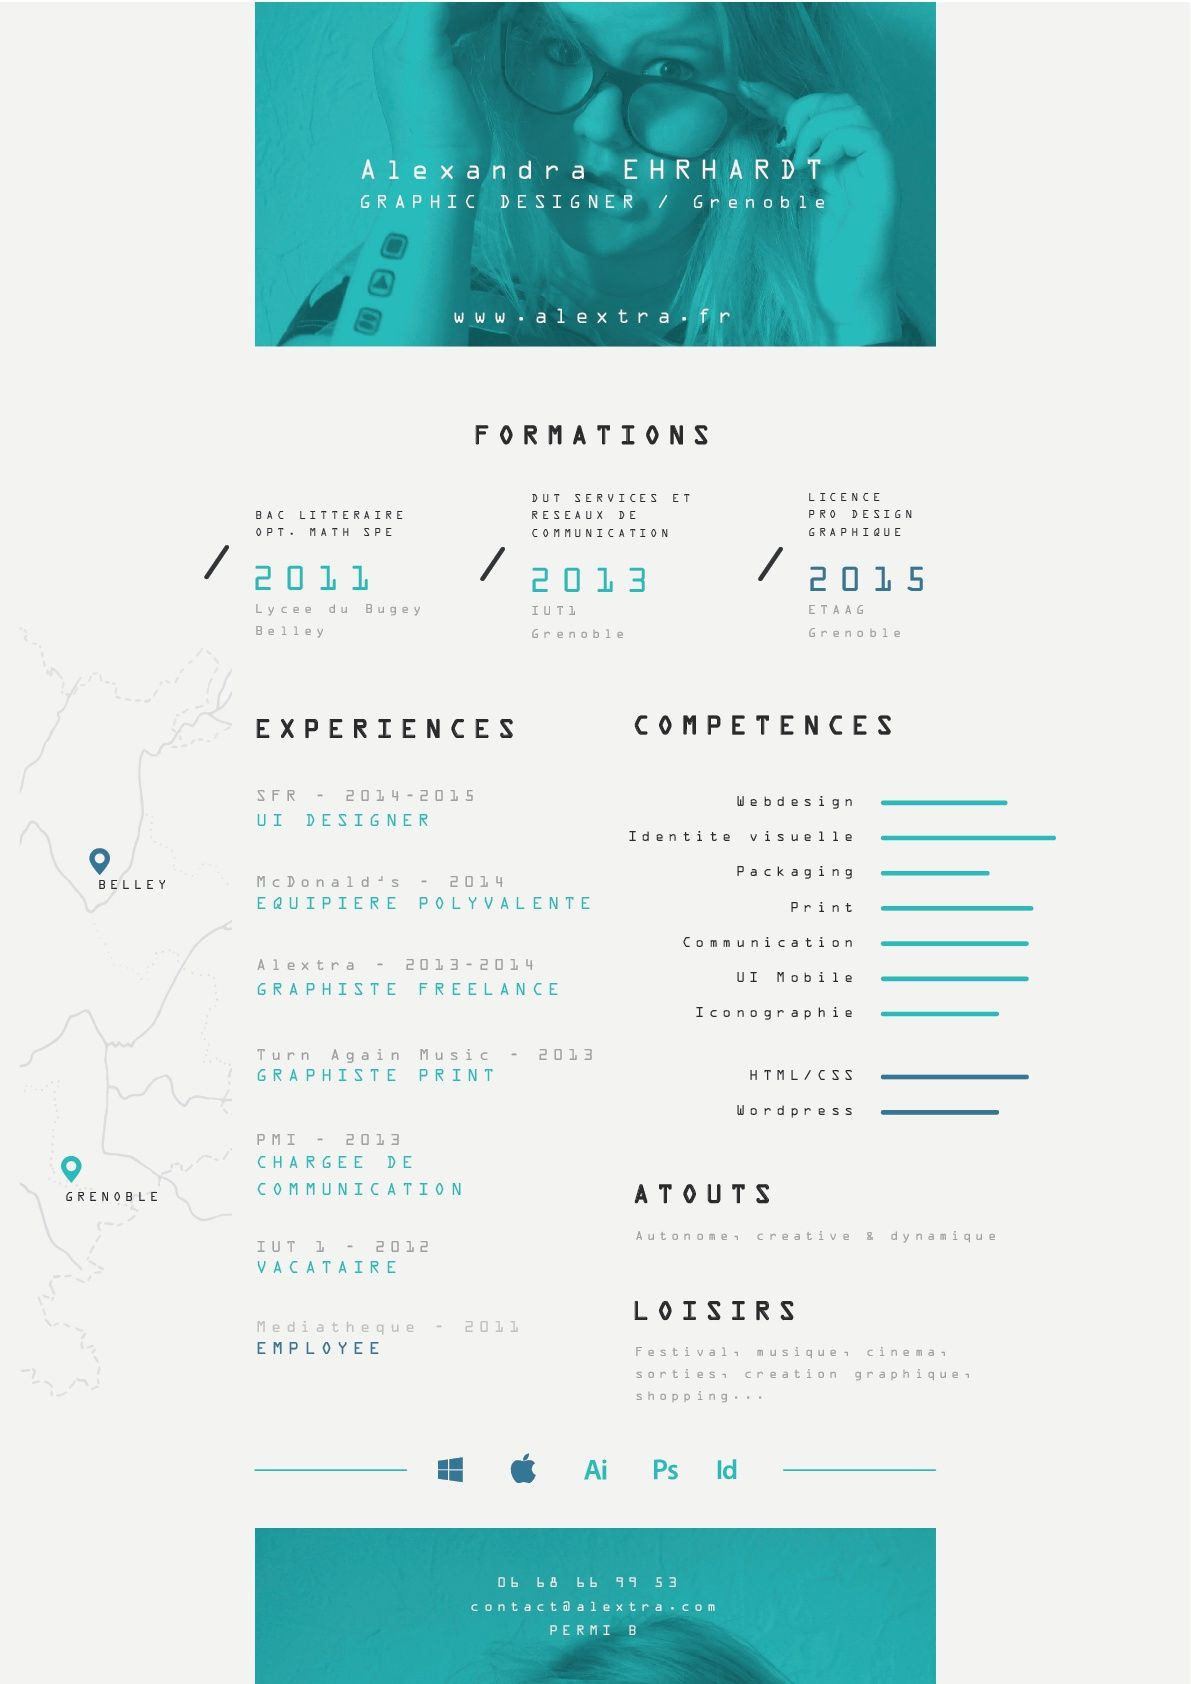 pin by patsy chen on curriculum vitae